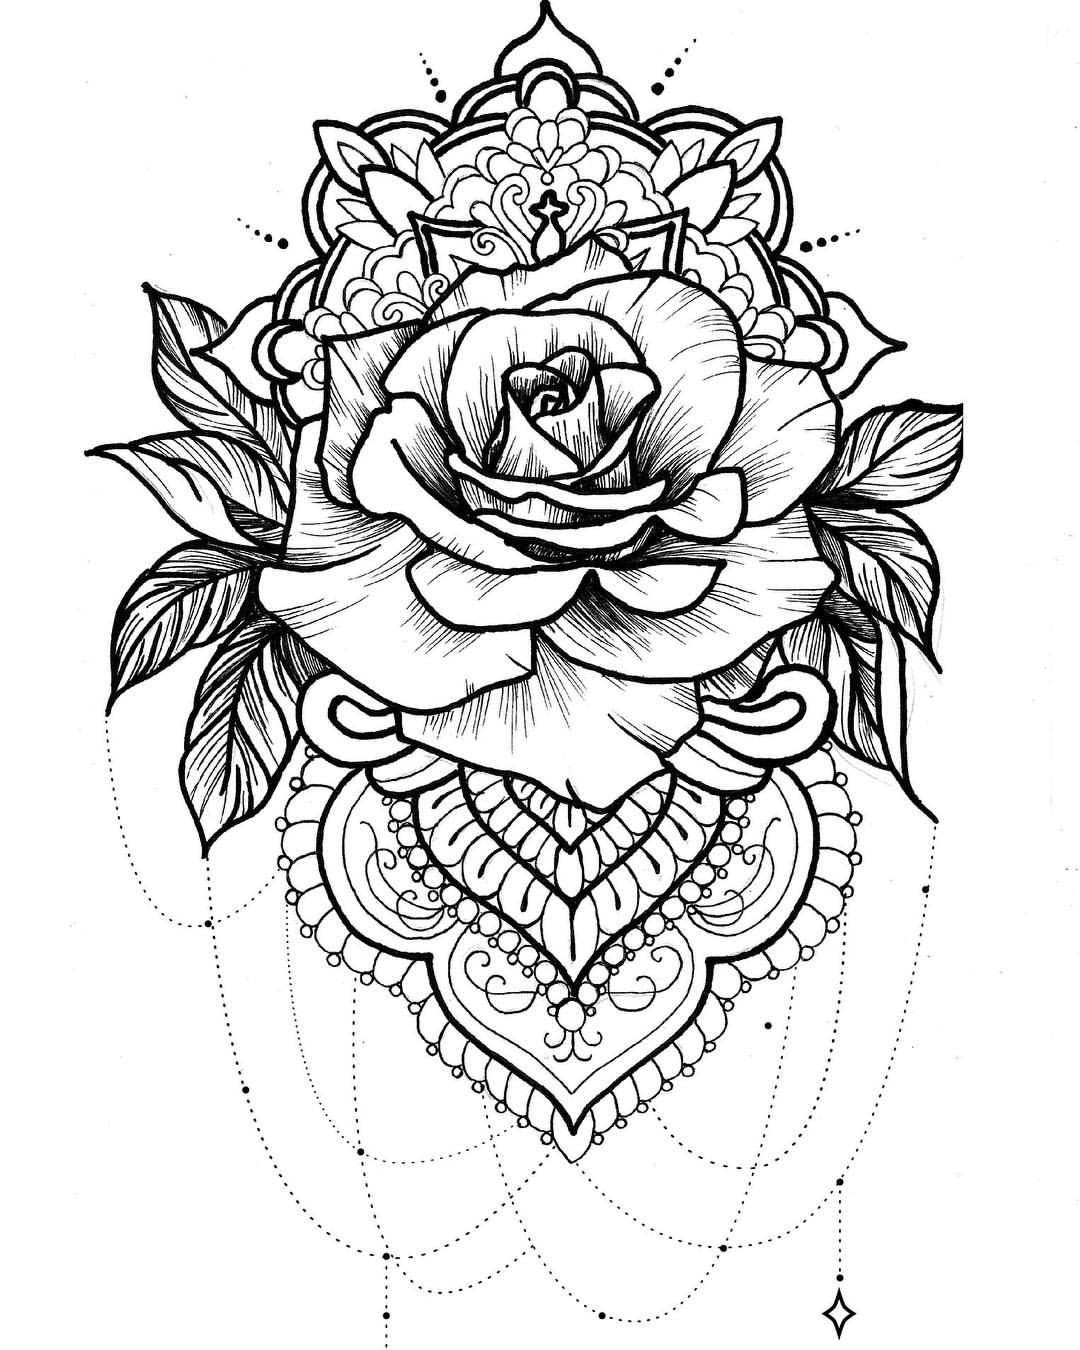 38c4fe668 Greyscale rose mandala tattoo idea | Tattoo ideas | Mandala tattoo ...